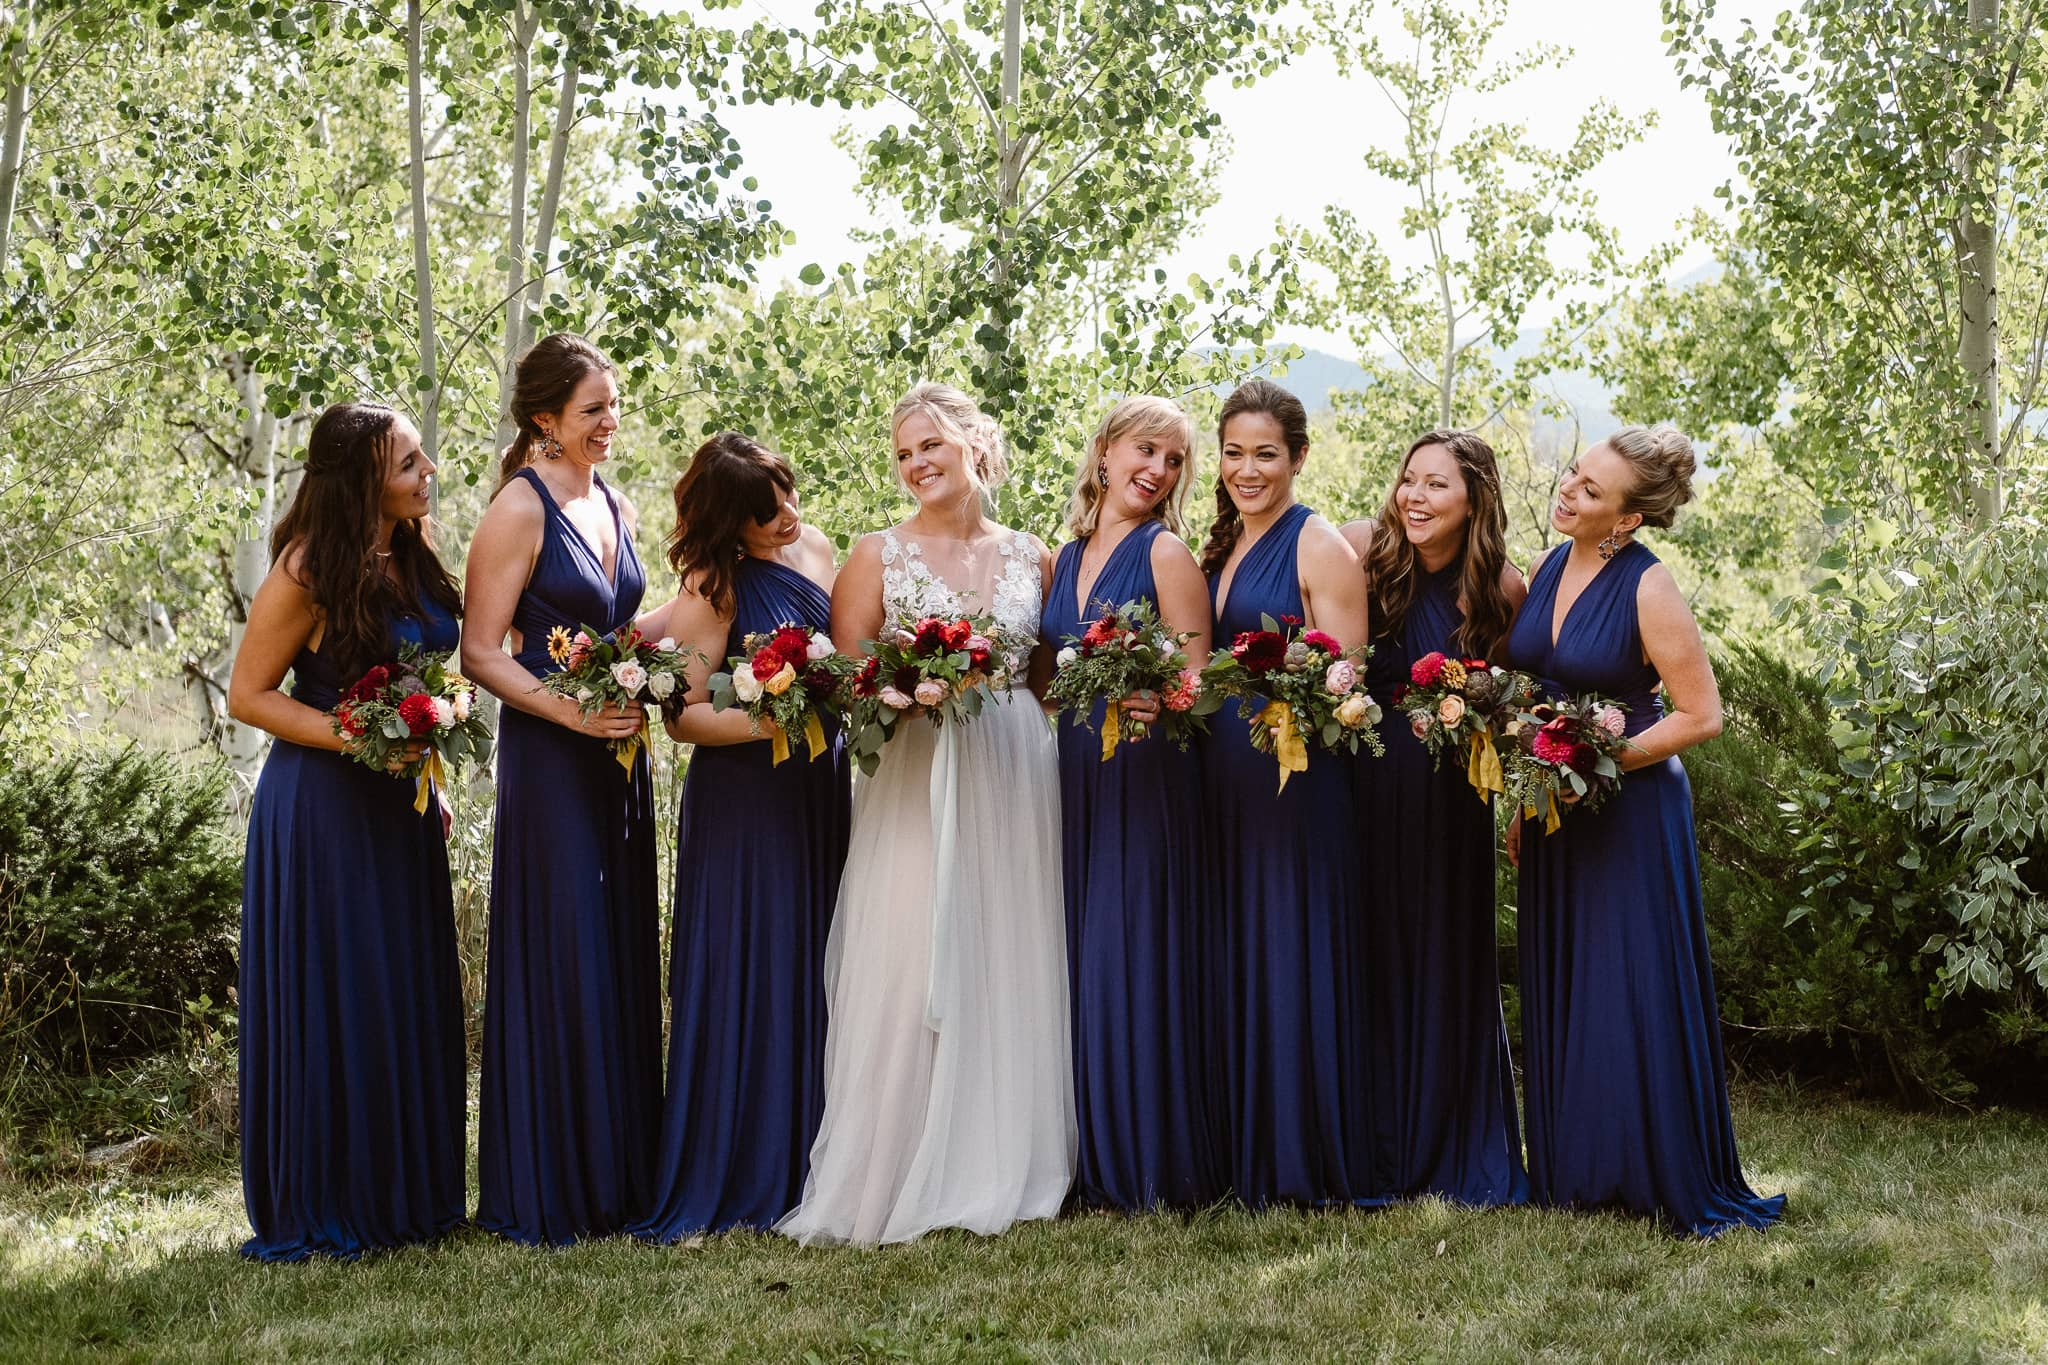 Steamboat Springs wedding photographer, La Joya Dulce wedding, Colorado ranch wedding venues, bride with wedding party, bridesmaids in navy dresses,